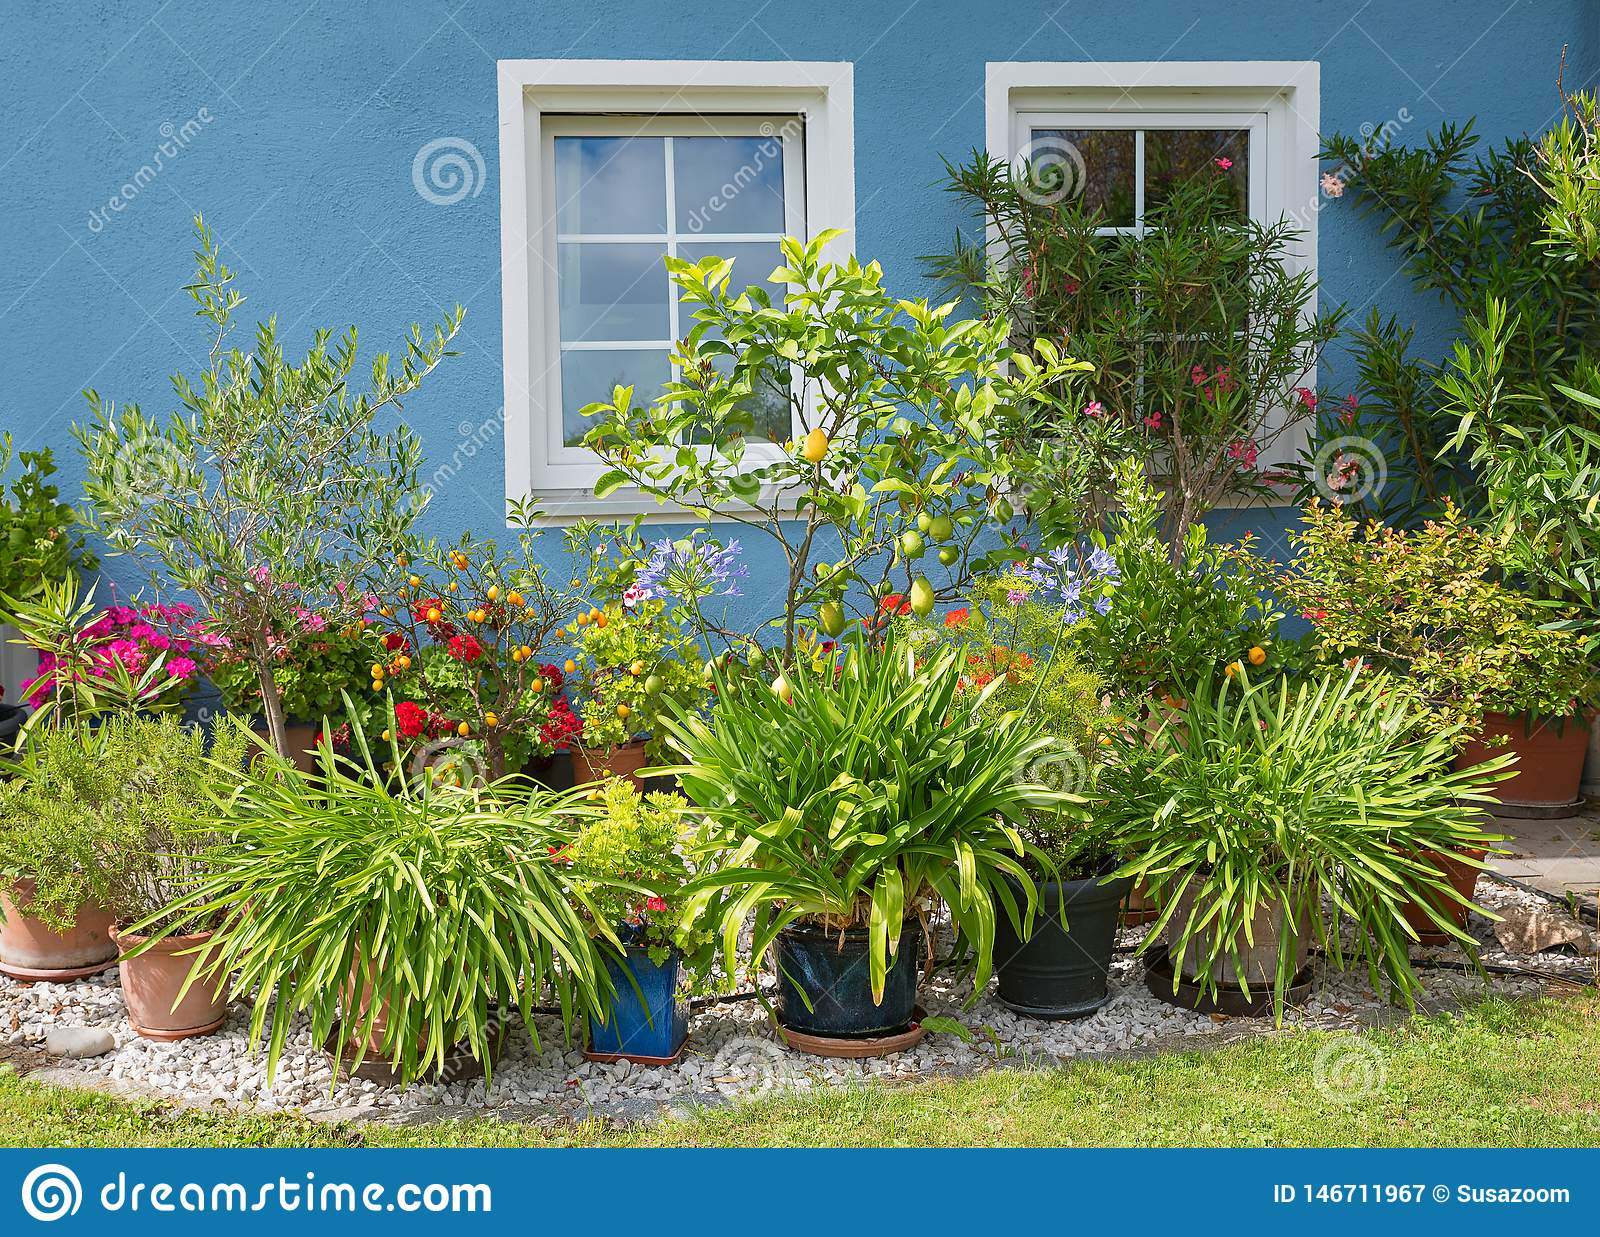 Blue House Front With Two White Windows And Mediterranean Plants